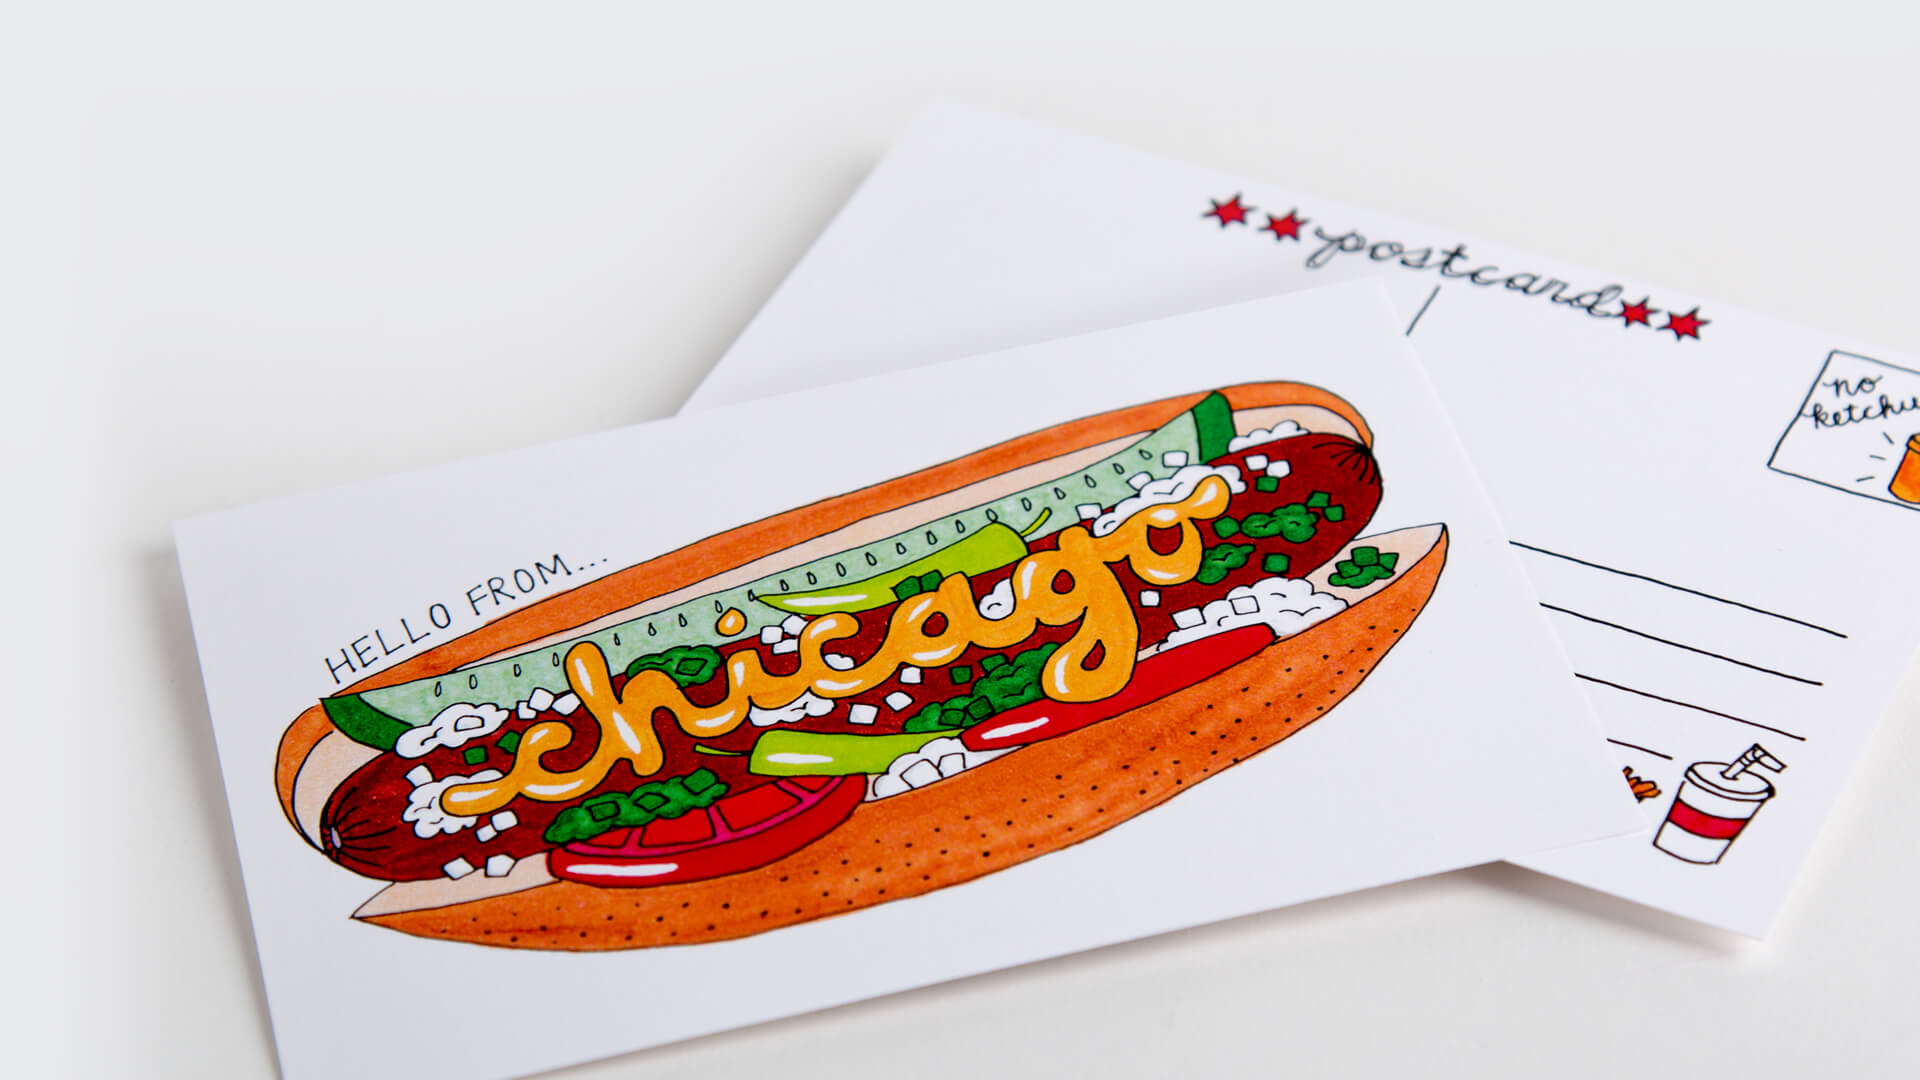 On demand Custom Postcard Printing Service - eazyprintz - Top Printing Service In Singapore